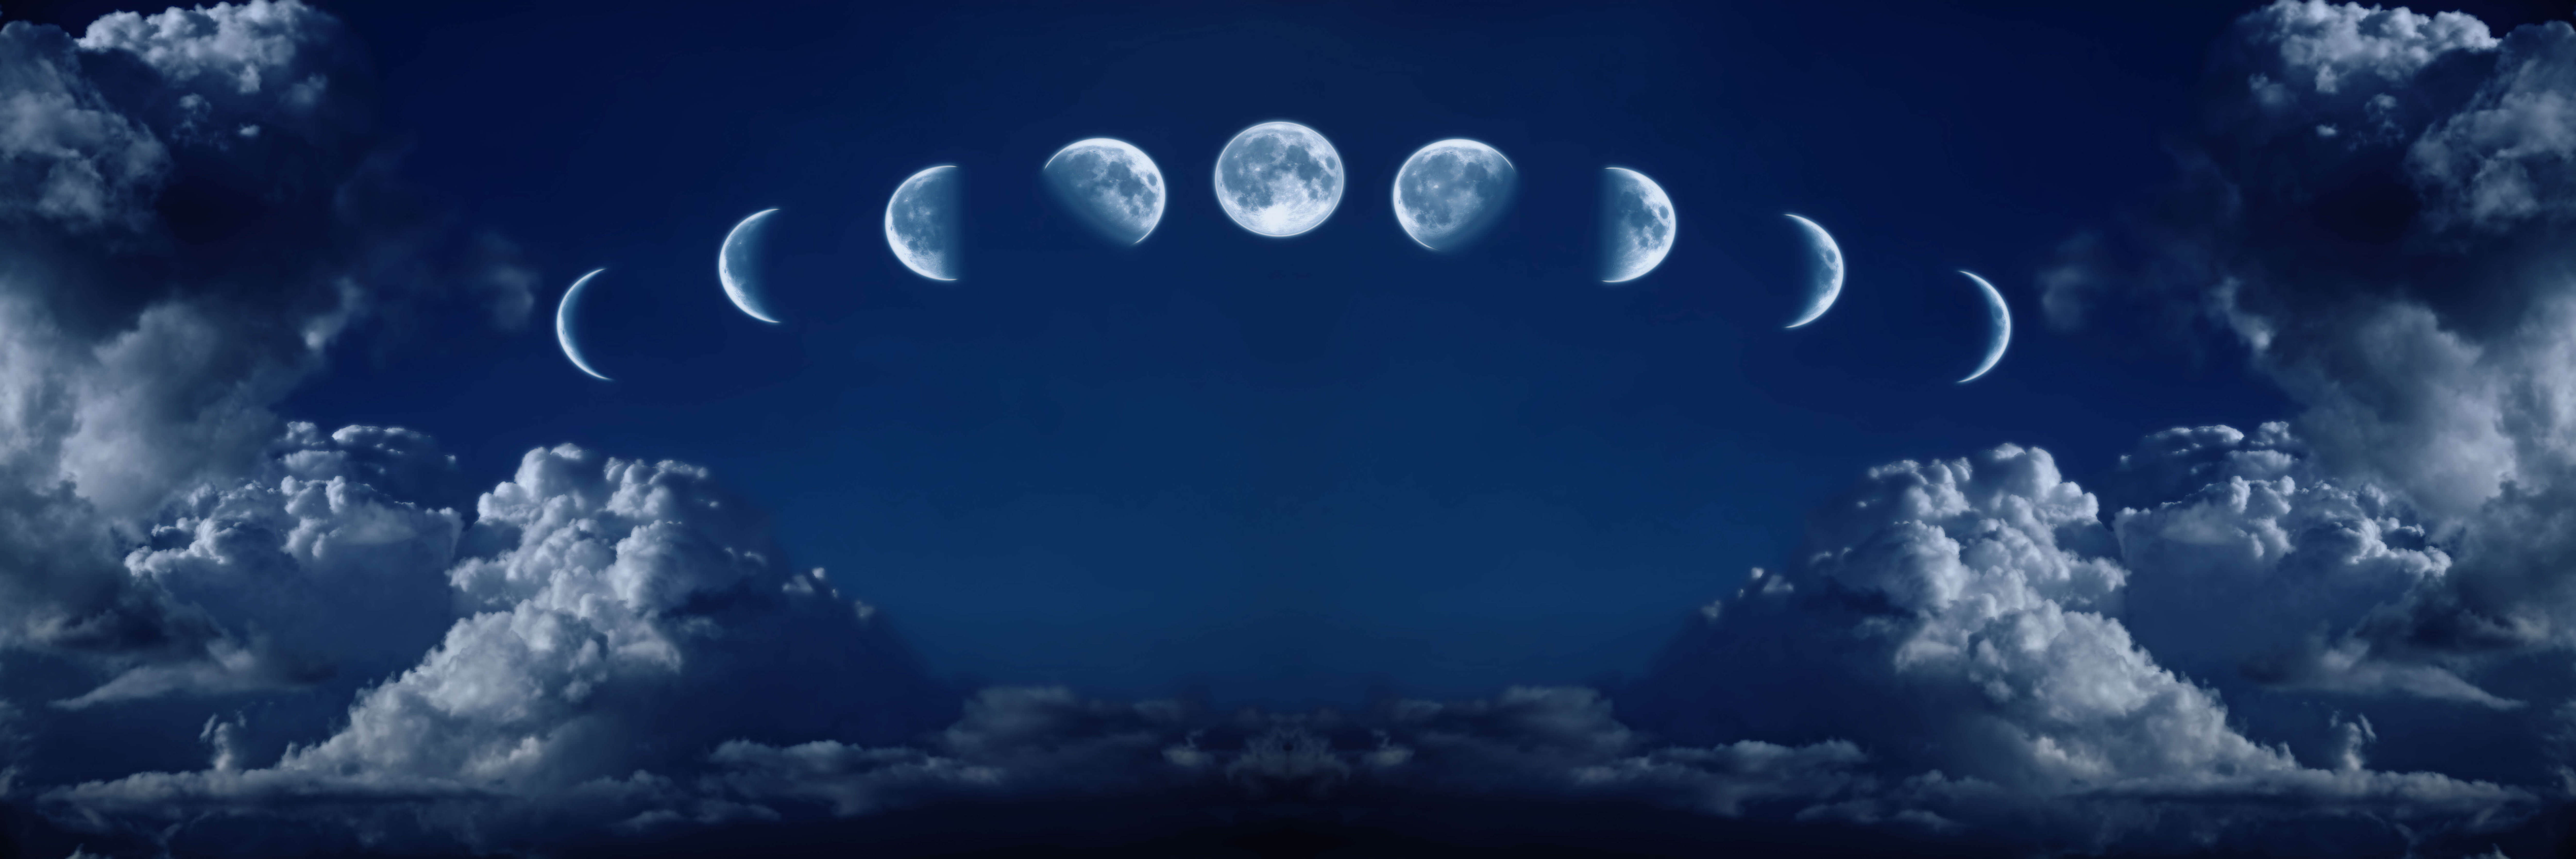 Seed Essential Oils for the New Moon